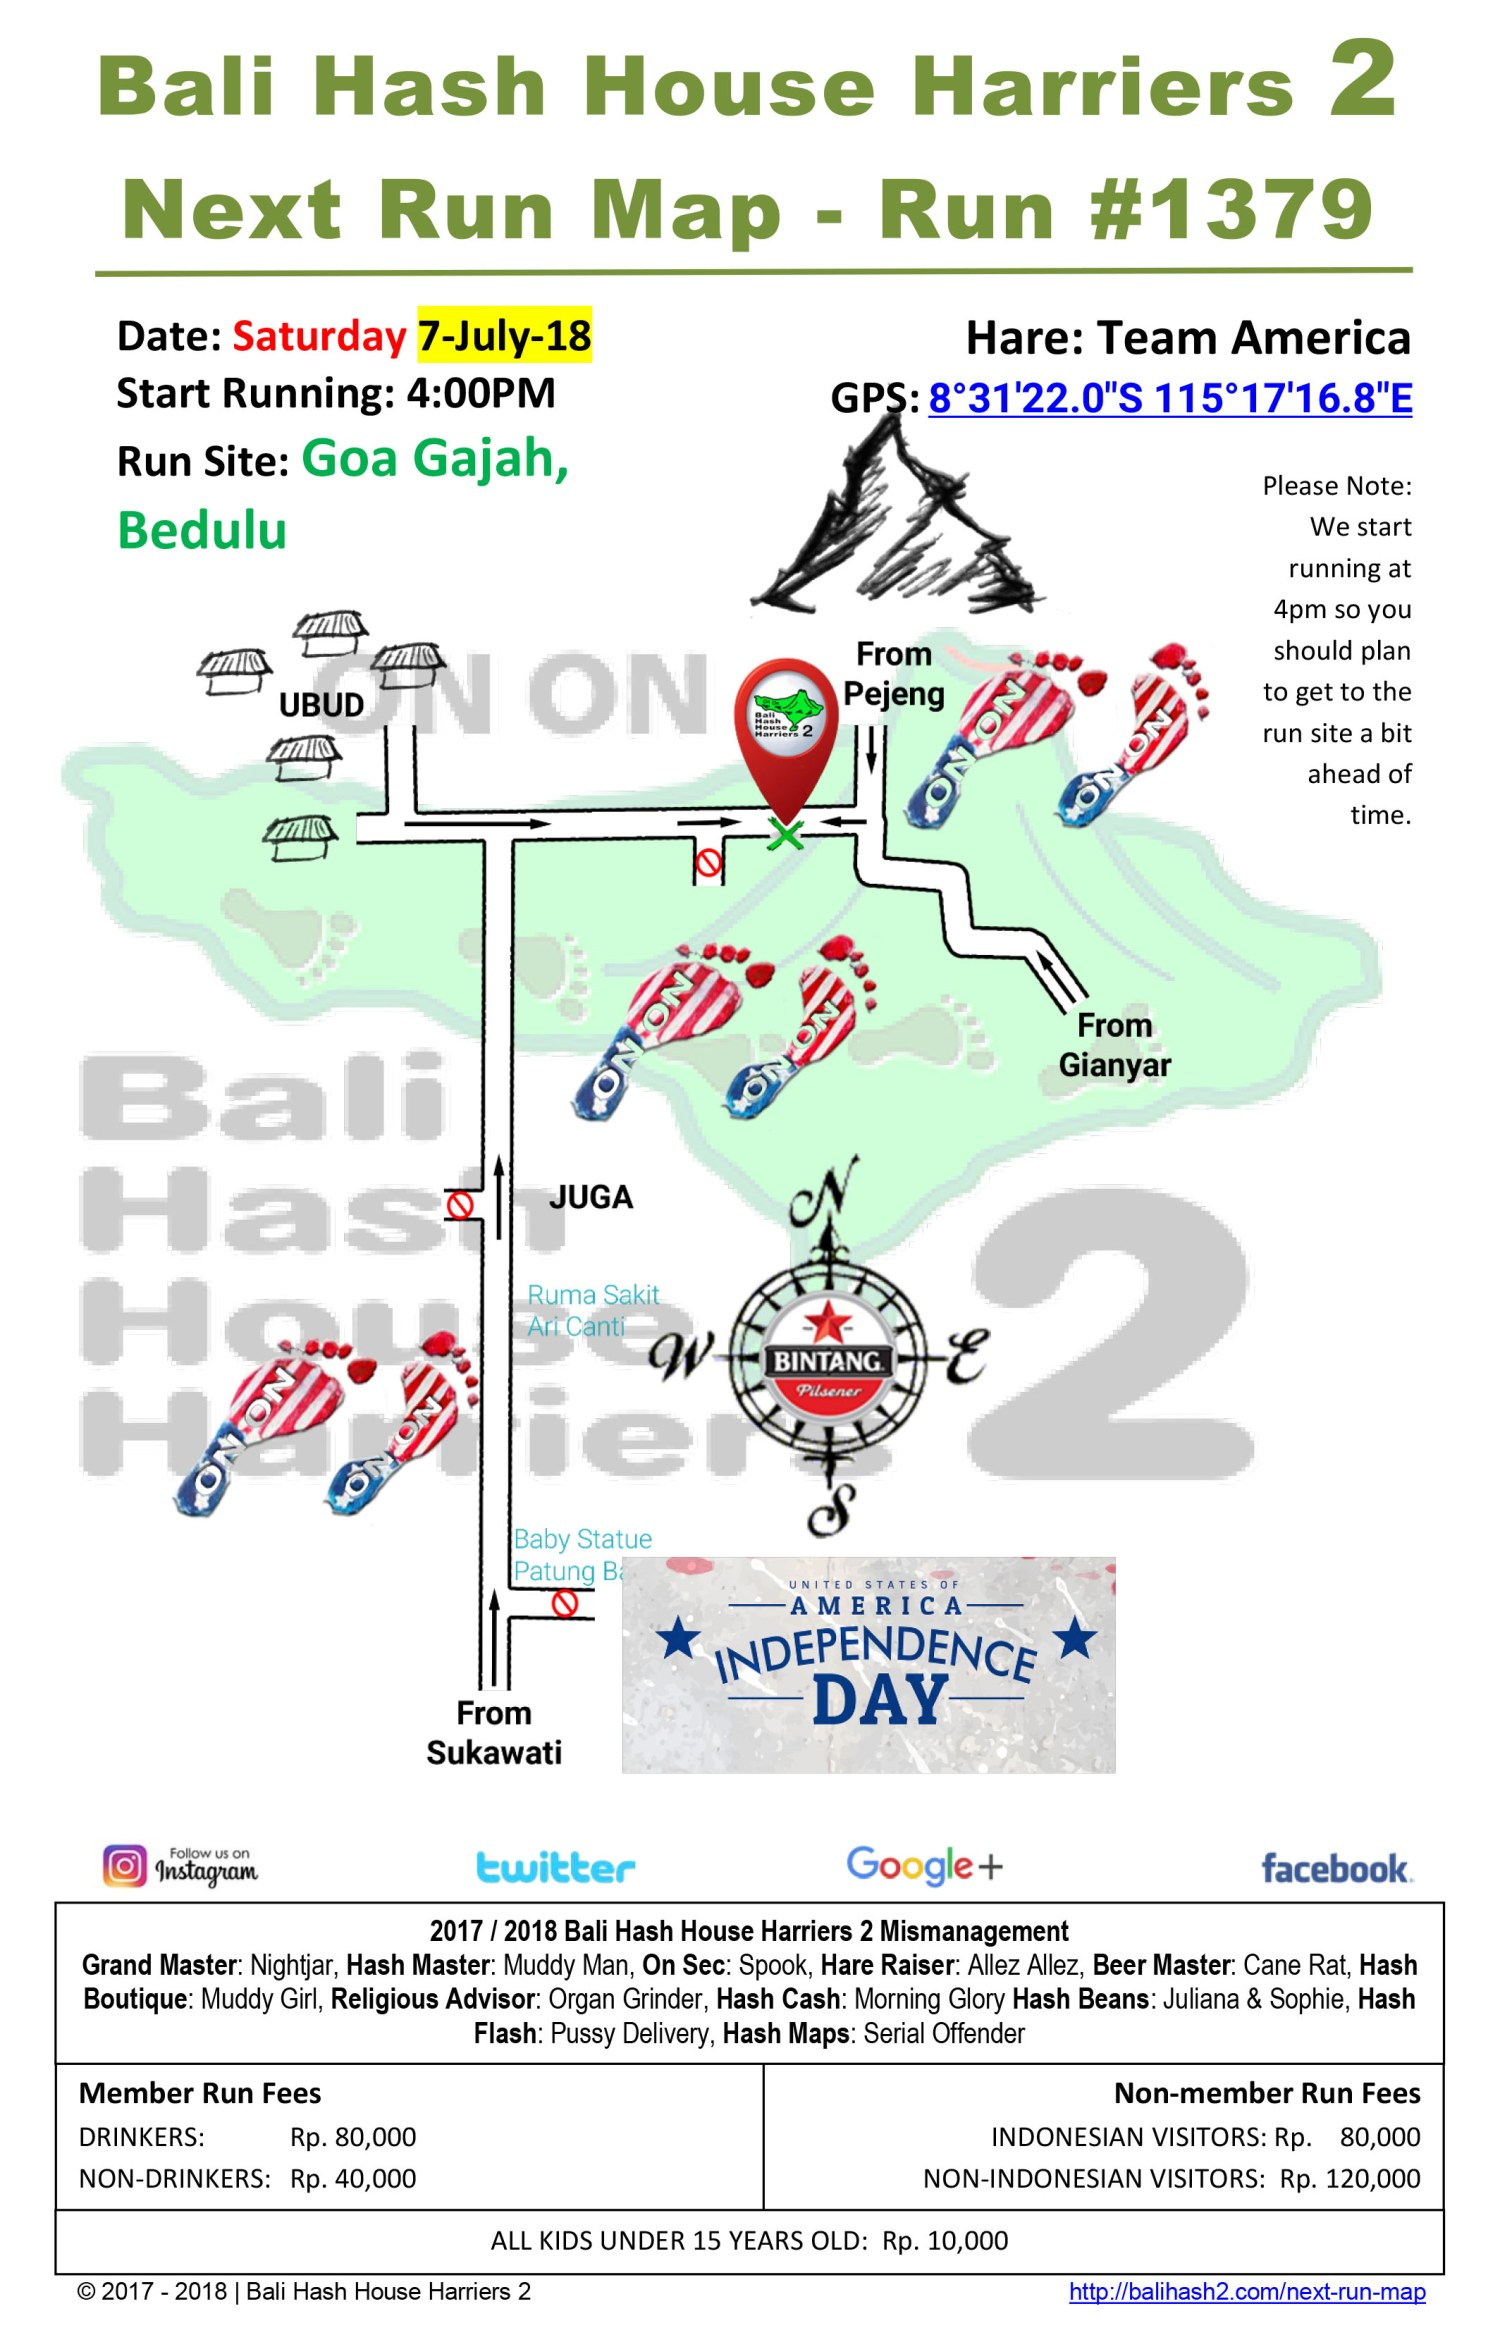 Bali Hash House Harriers 2 Next Run Map #1380 Goa Gajah 7-Jul-18